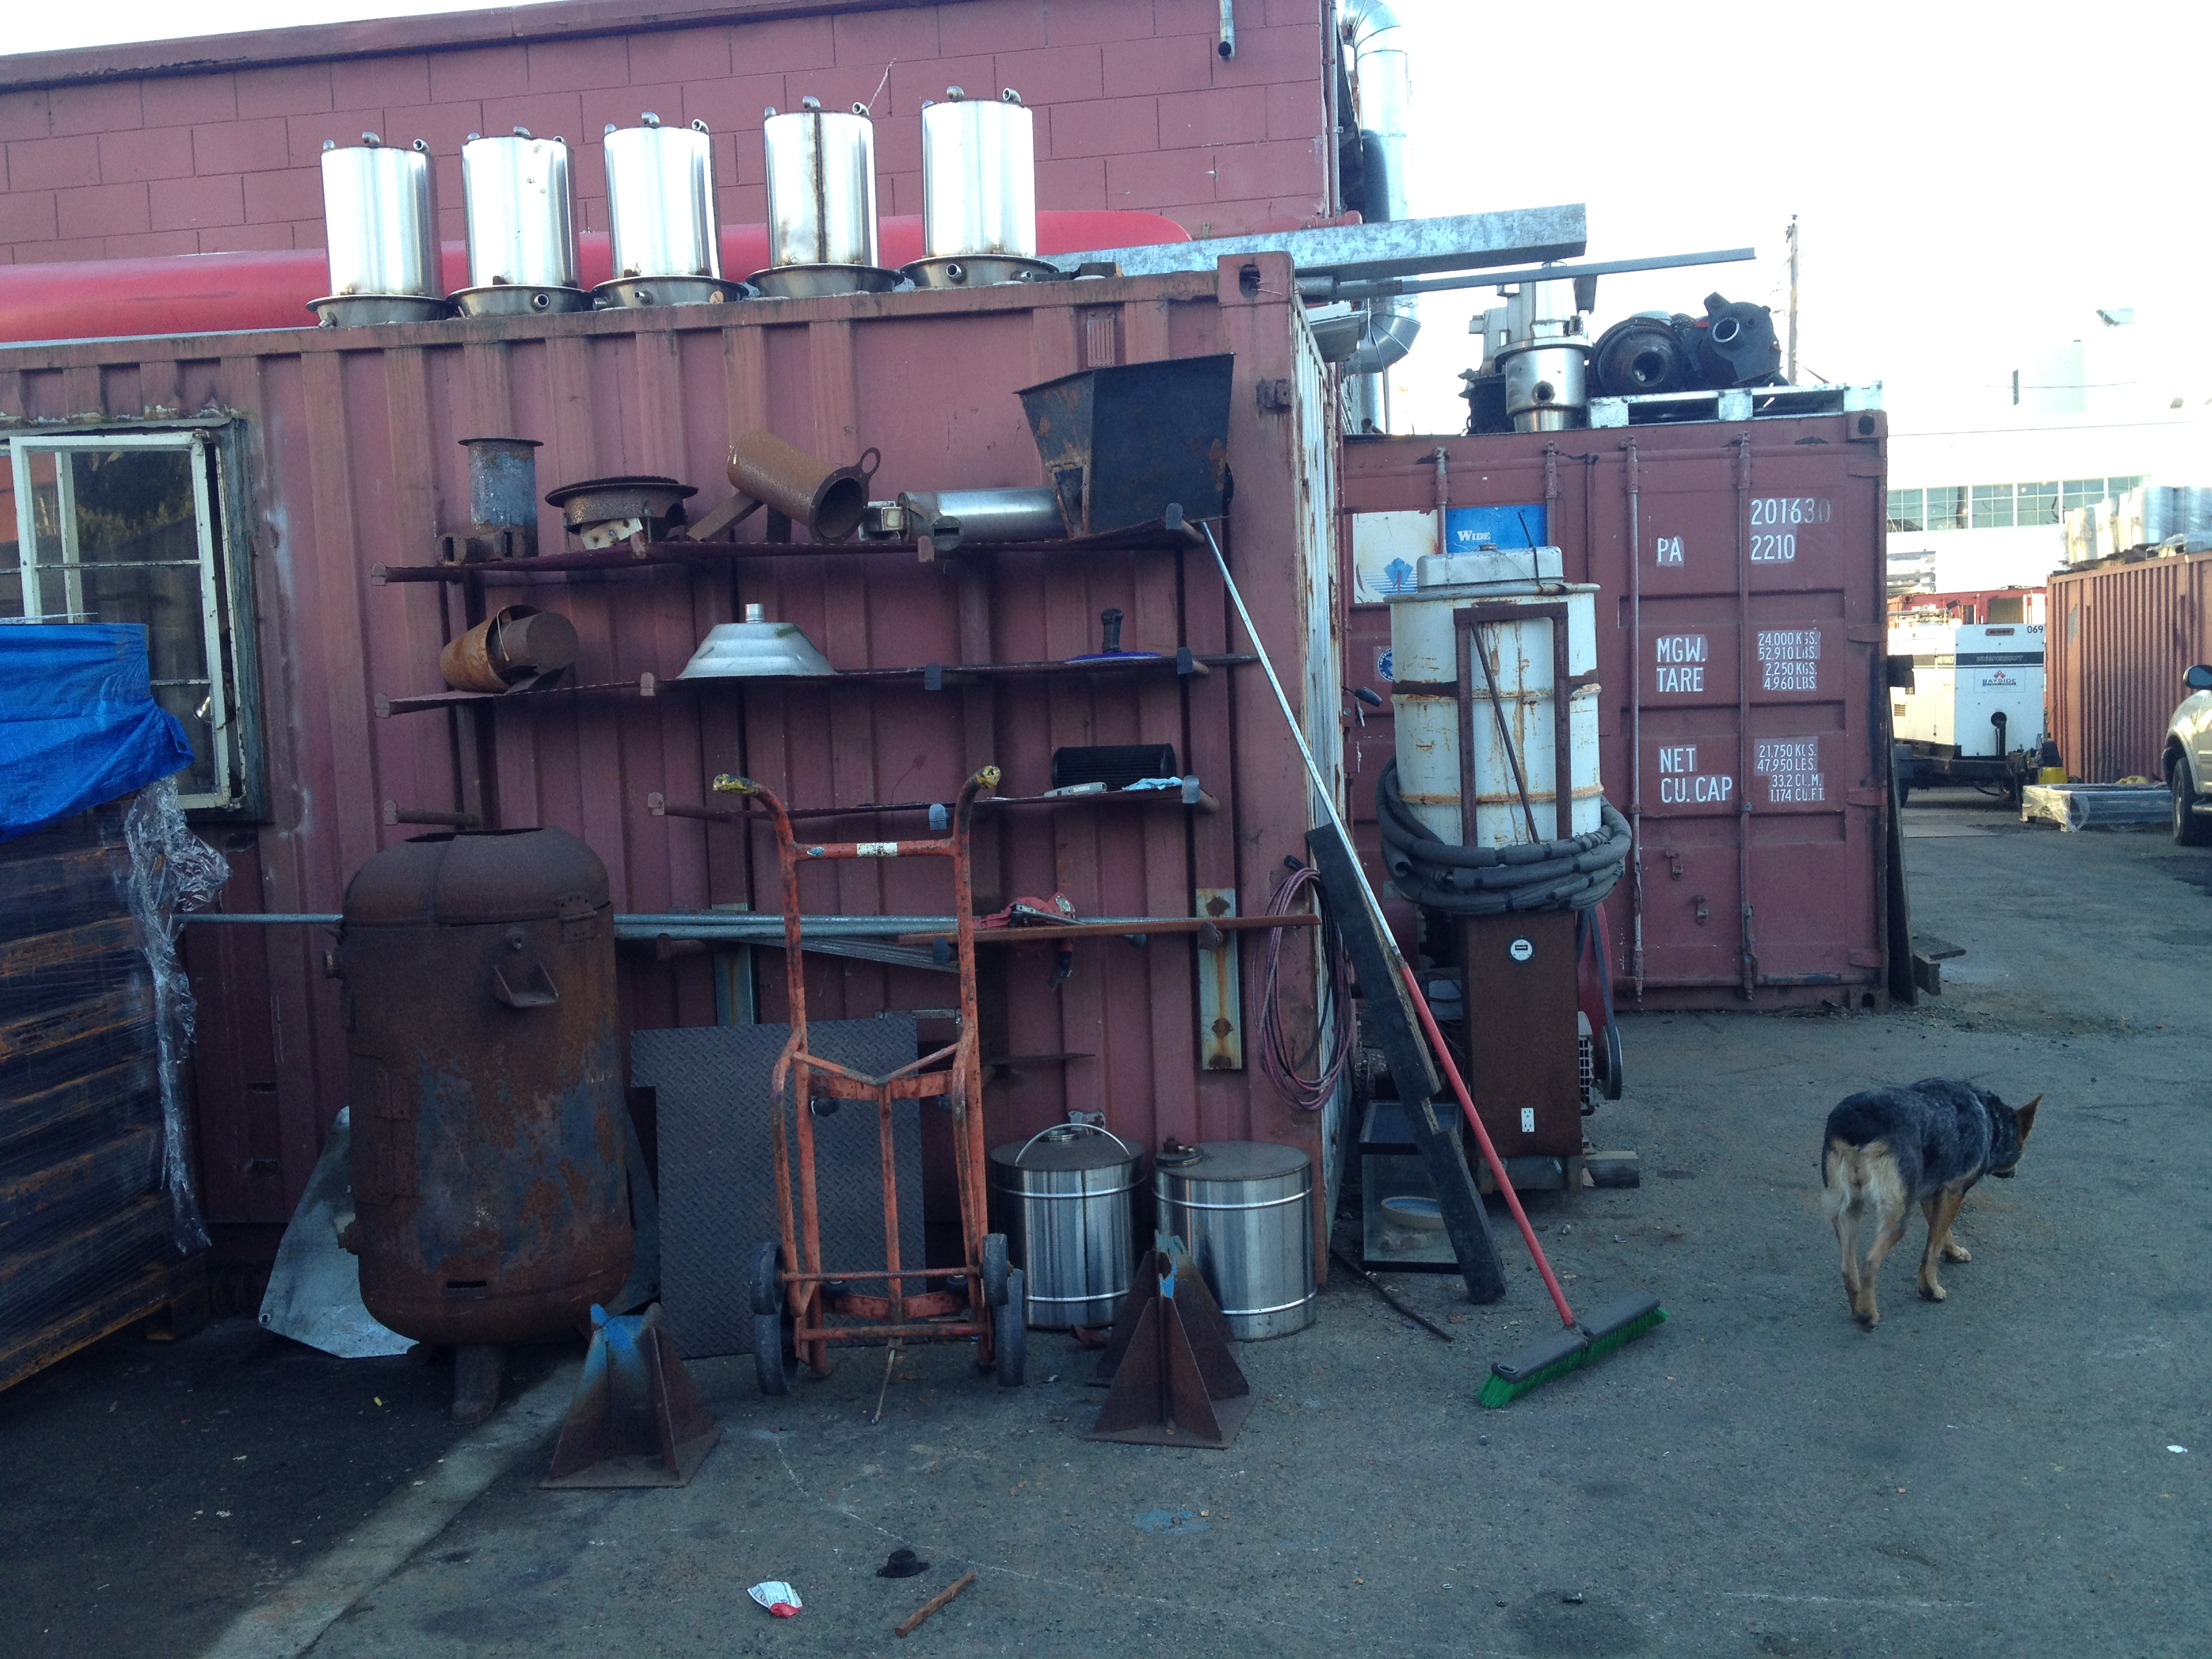 All Power Labs works out of a 11,000 square foot former artist collective space, in Berkeley, Calif., filled with shipping containers. Dog Dulie wanders around the space.